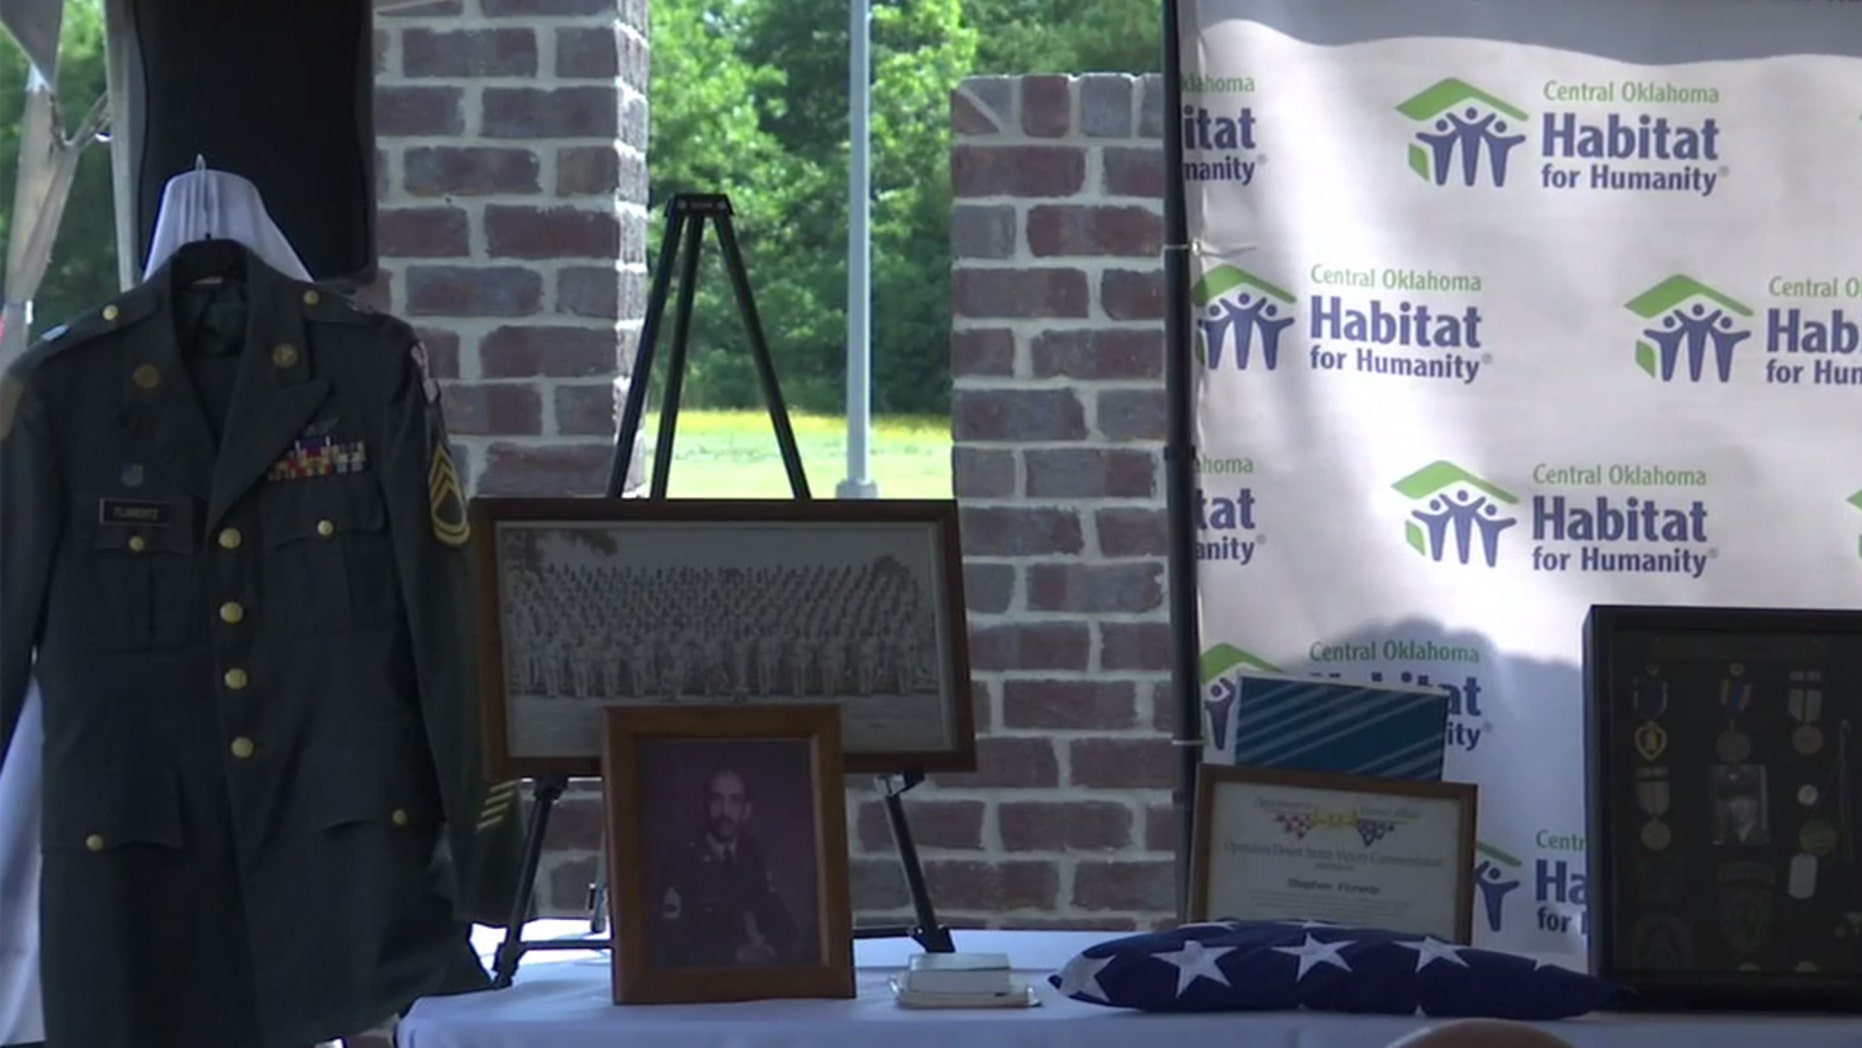 An Army veteran who served his country also contributed in a spectacular way to his adopted home state of Oklahoma.